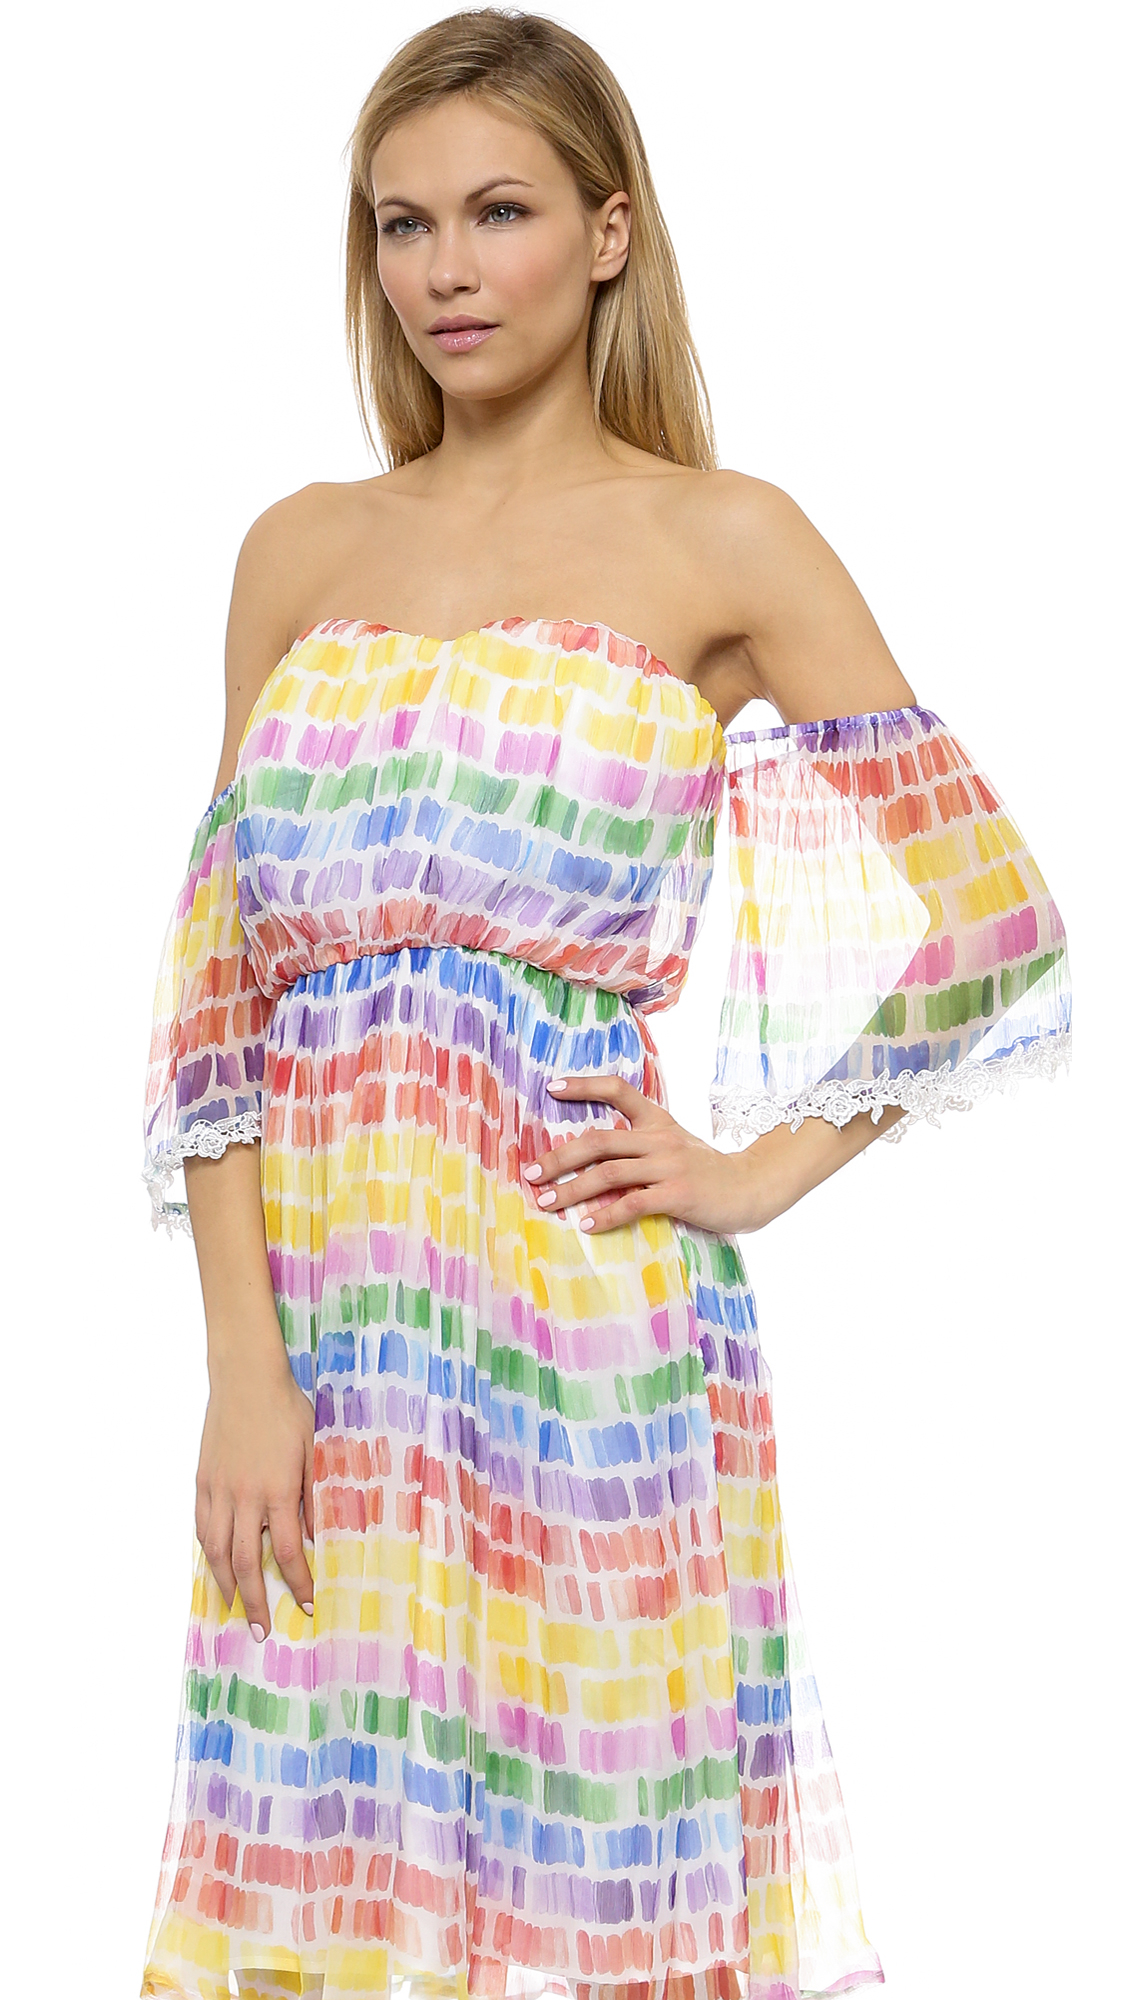 You searched for: rainbow clothing! Etsy is the home to thousands of handmade, vintage, and one-of-a-kind products and gifts related to your search. No matter what you're looking for or where you are in the world, our global marketplace of sellers can help you find unique and affordable options. Let's get started!